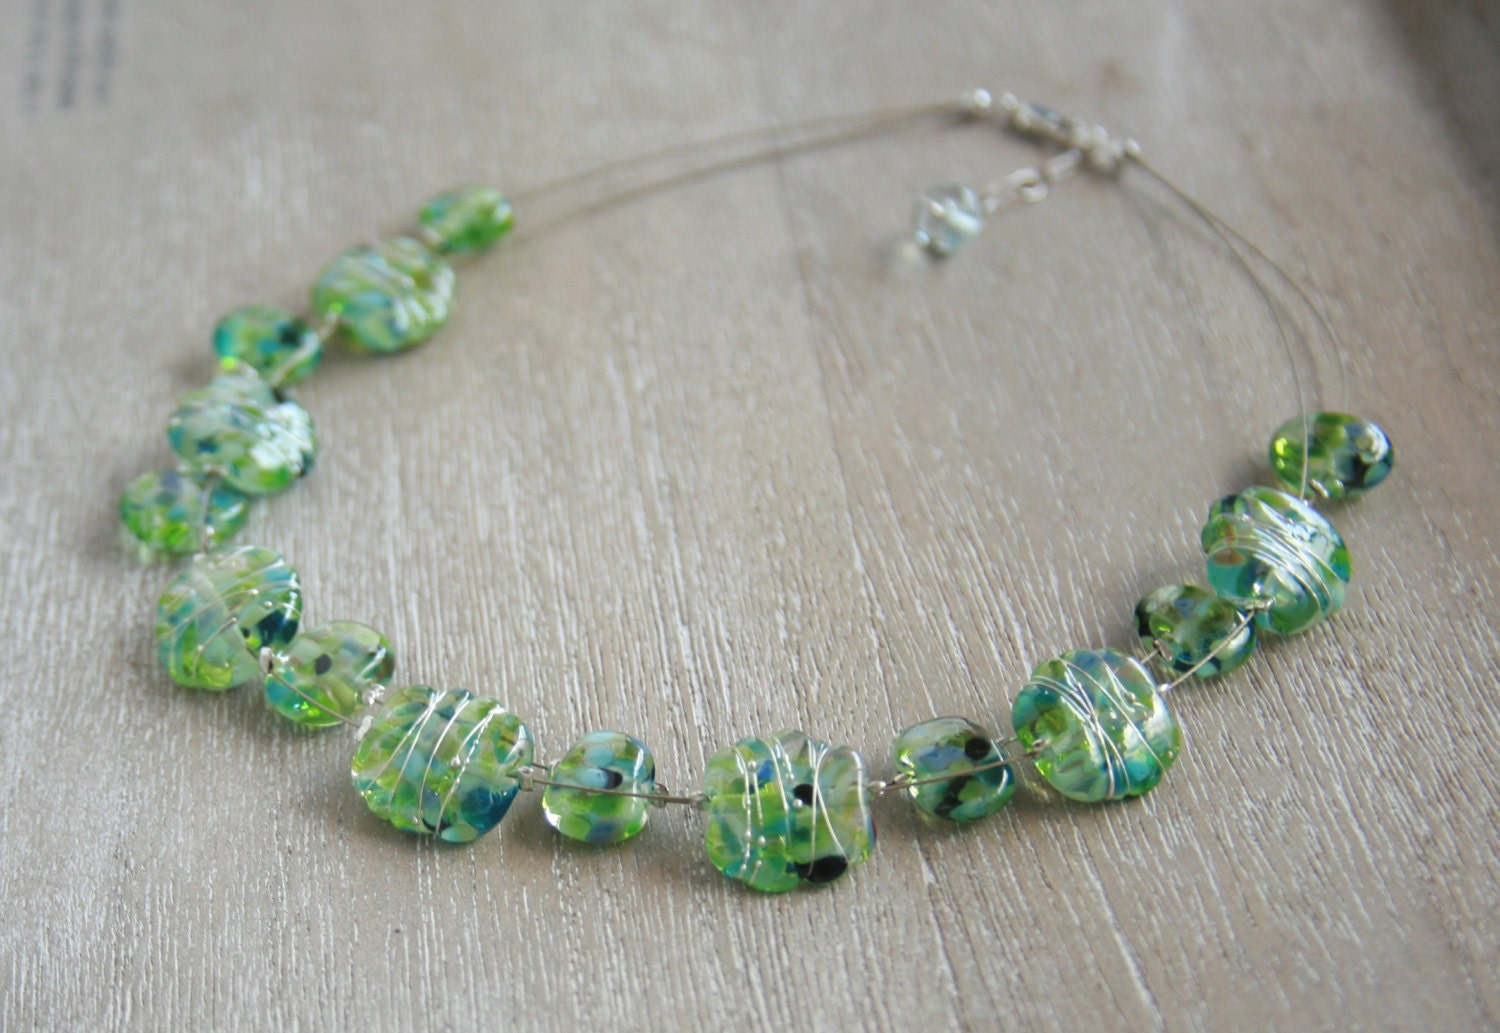 Recycled Glass Bead Necklace Made From A Wine Bottle